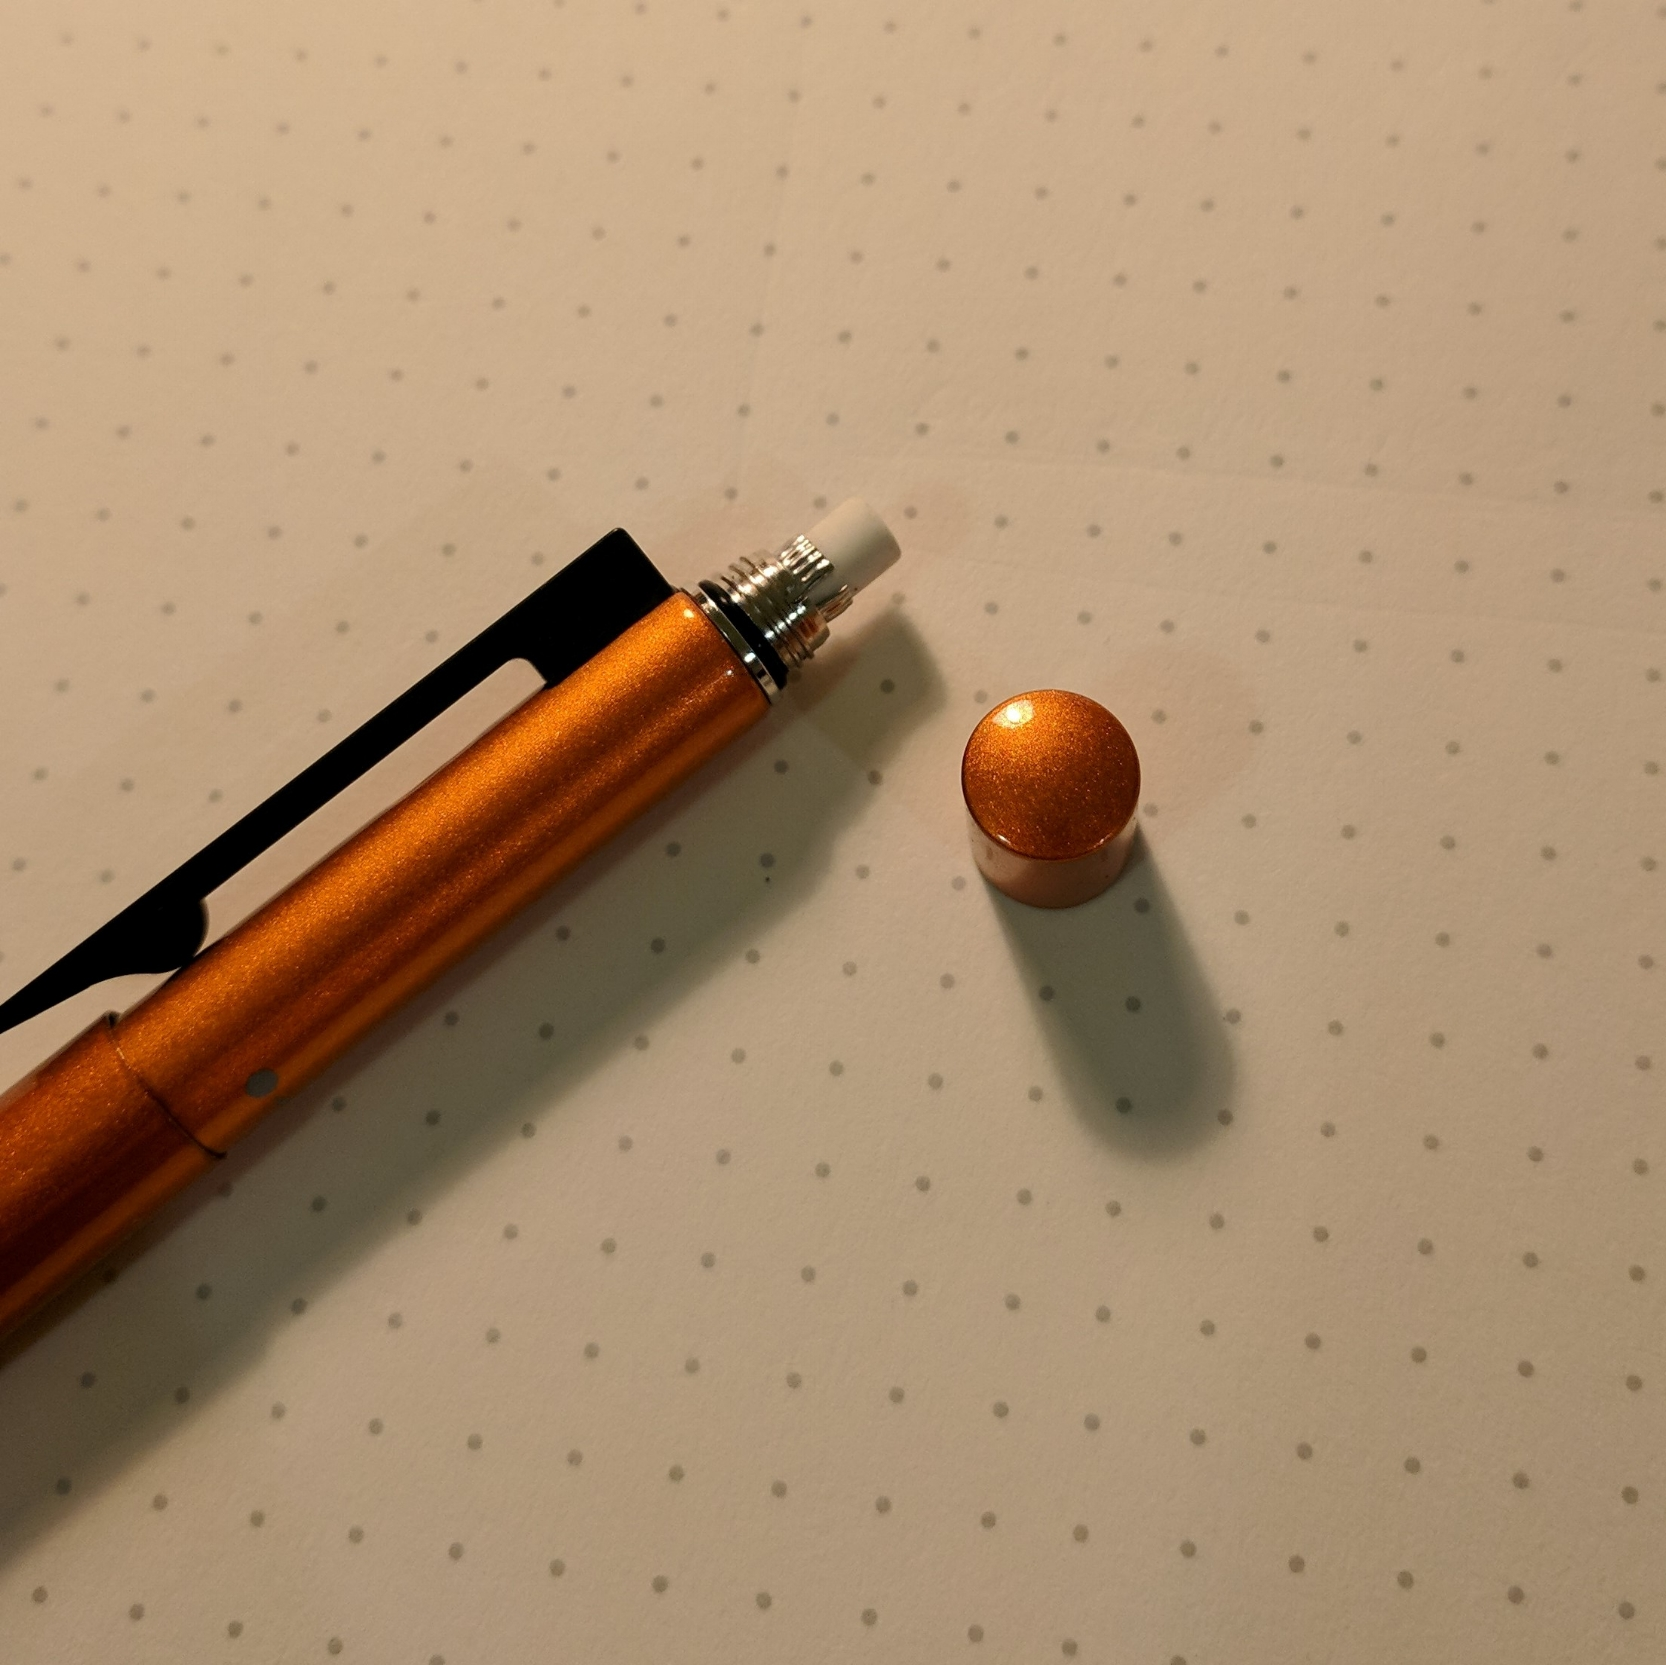 And, like many multi pens, you unscrew the end cap to expose the eraser. You can also get a glimpse of the shimmer on the metallic finish here.